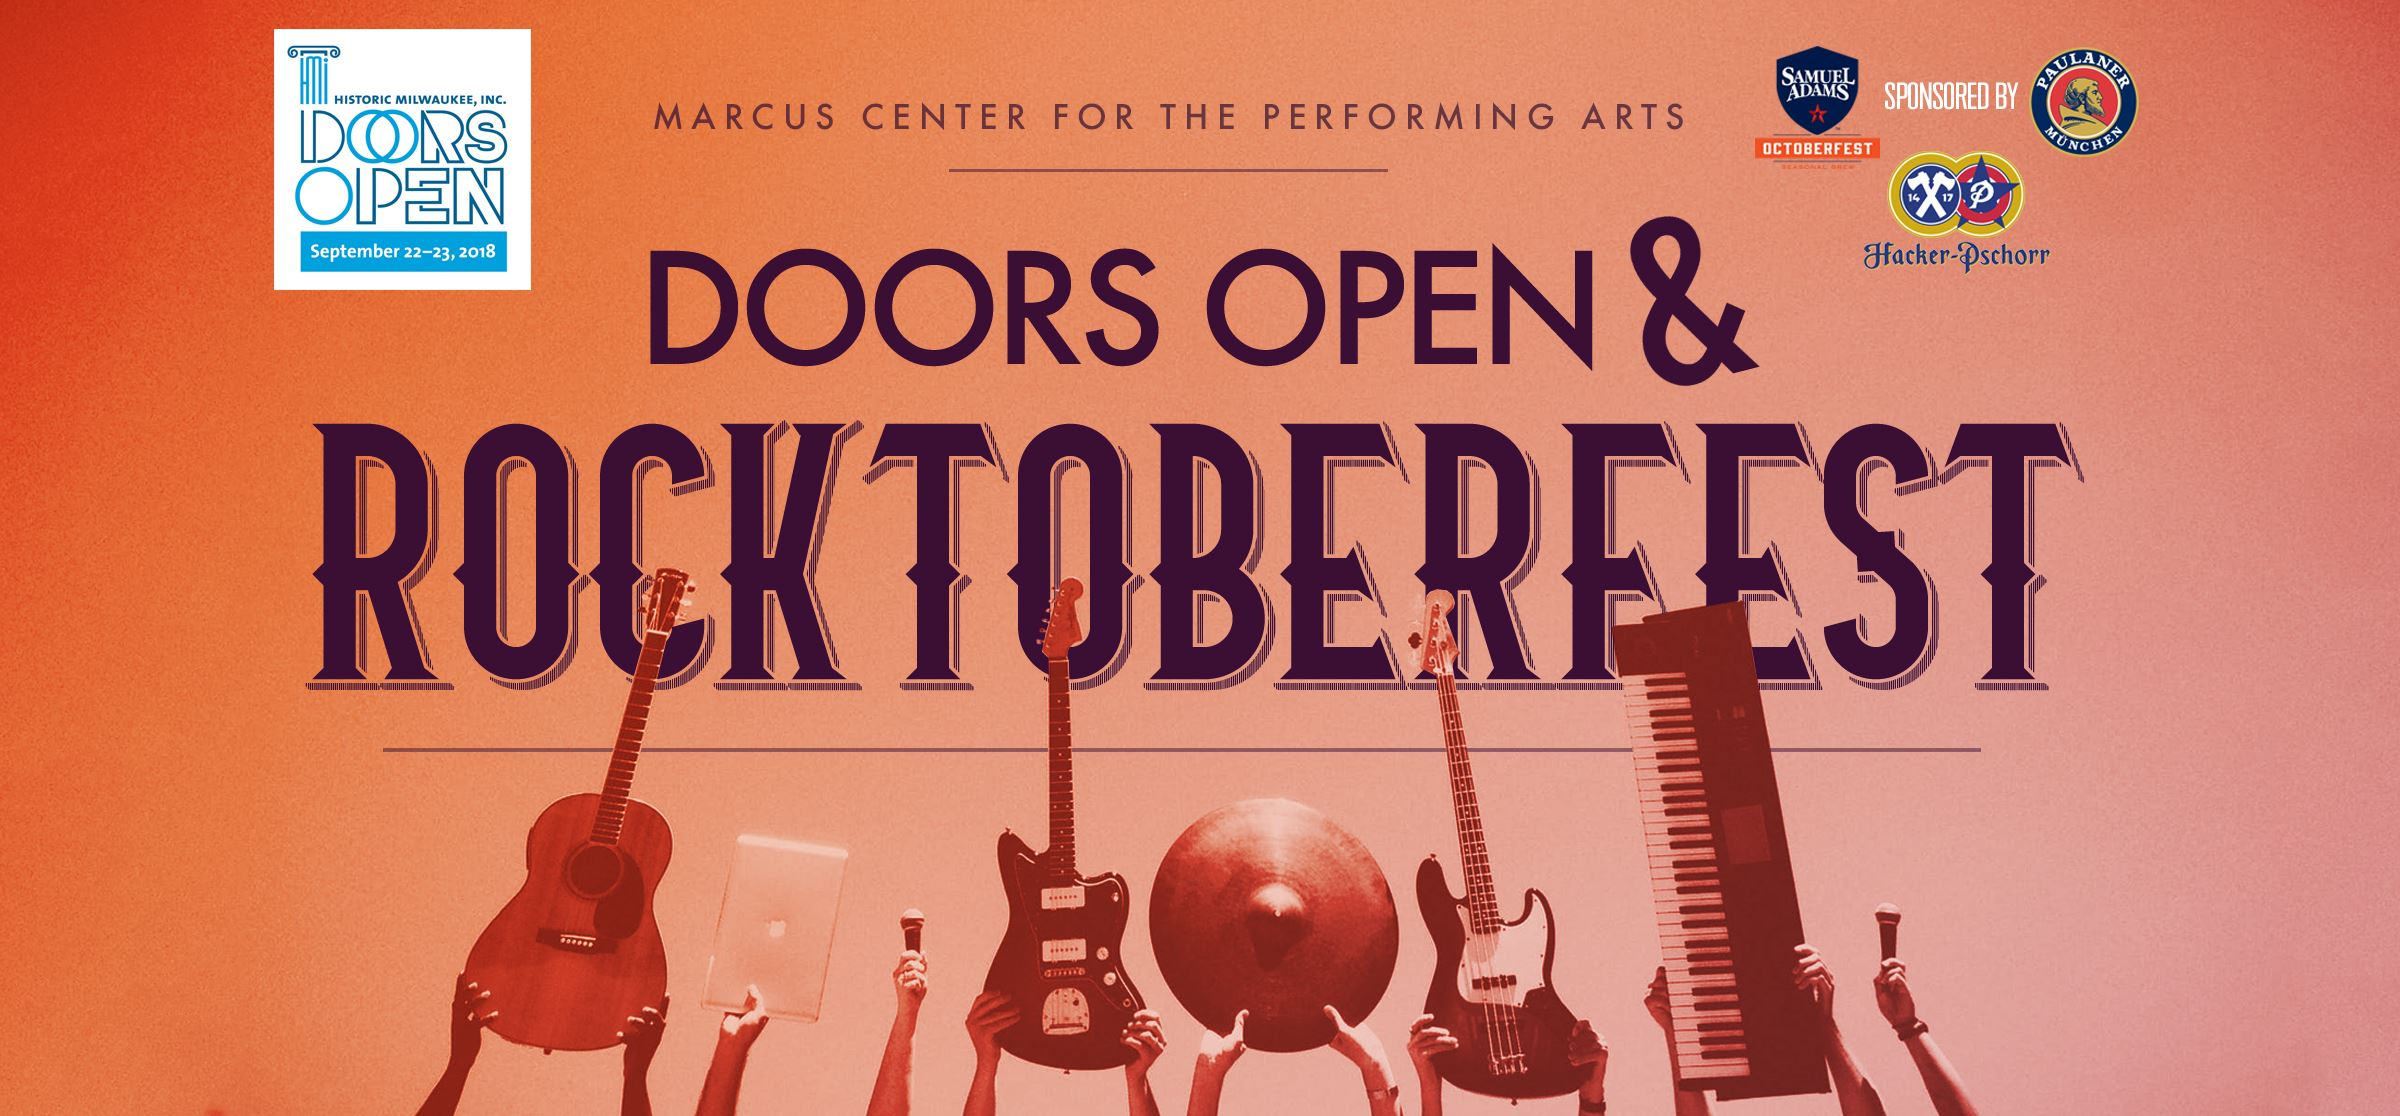 The Marcus Center Hosts ROCKTOBERFEST During Doors Open Milwaukee!